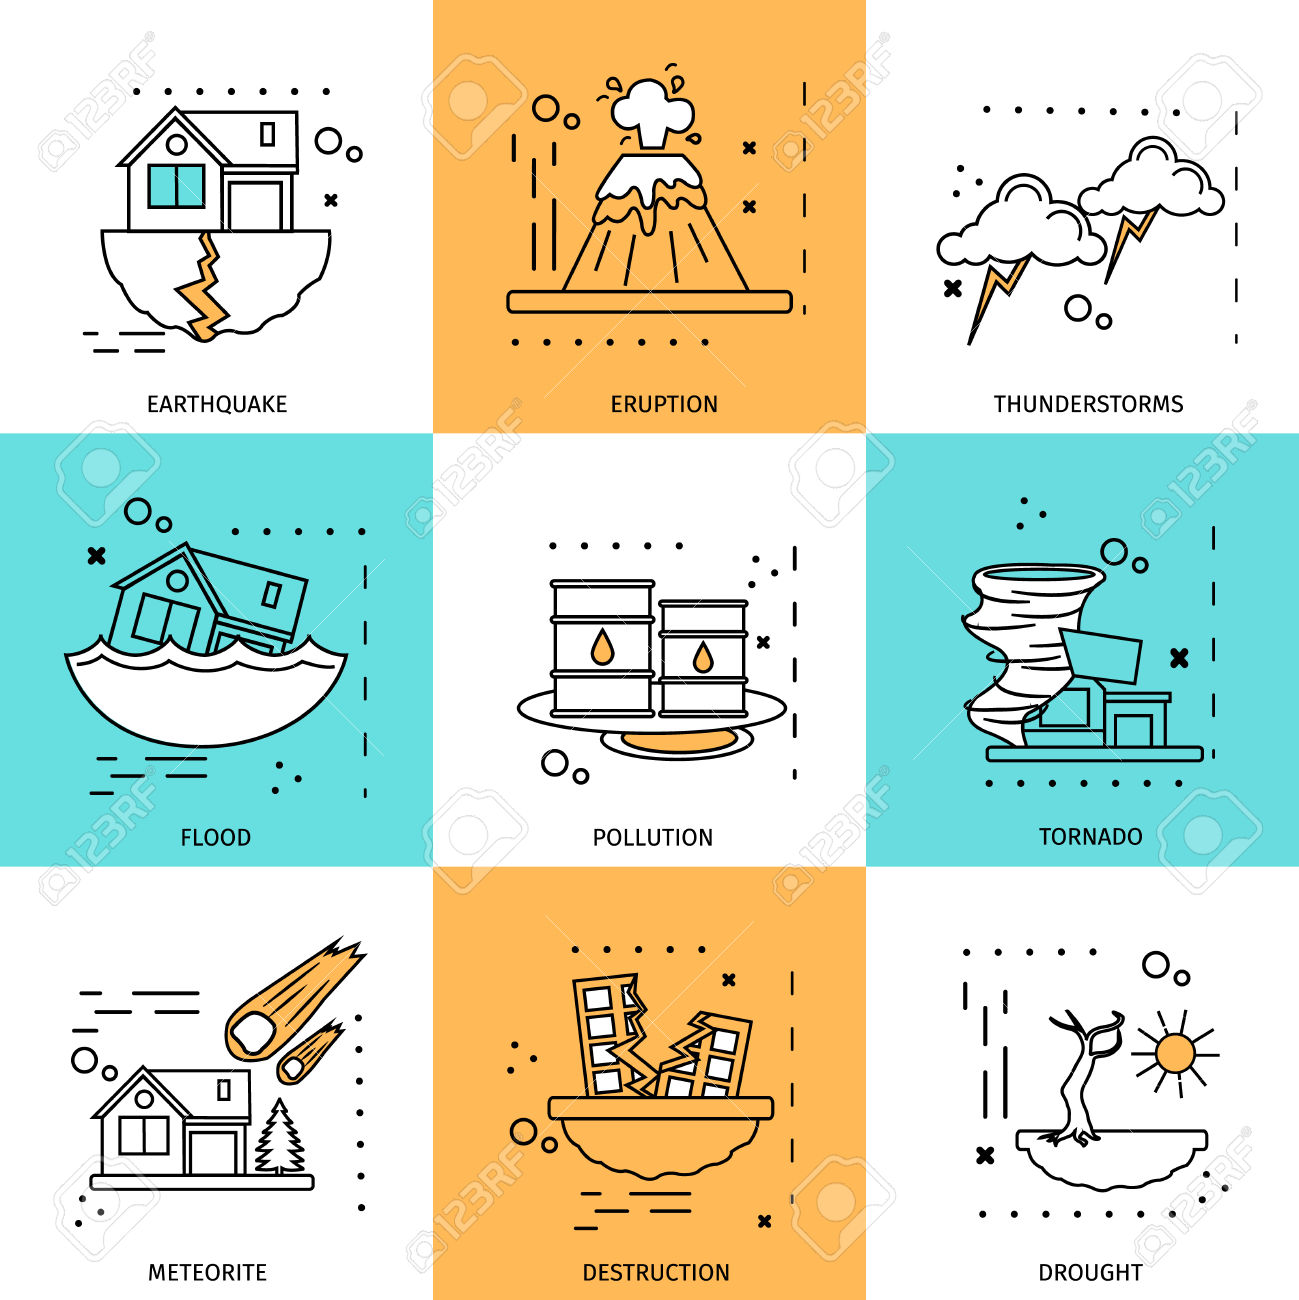 497 Flood Damage House Cliparts, Stock Vector And Royalty Free.